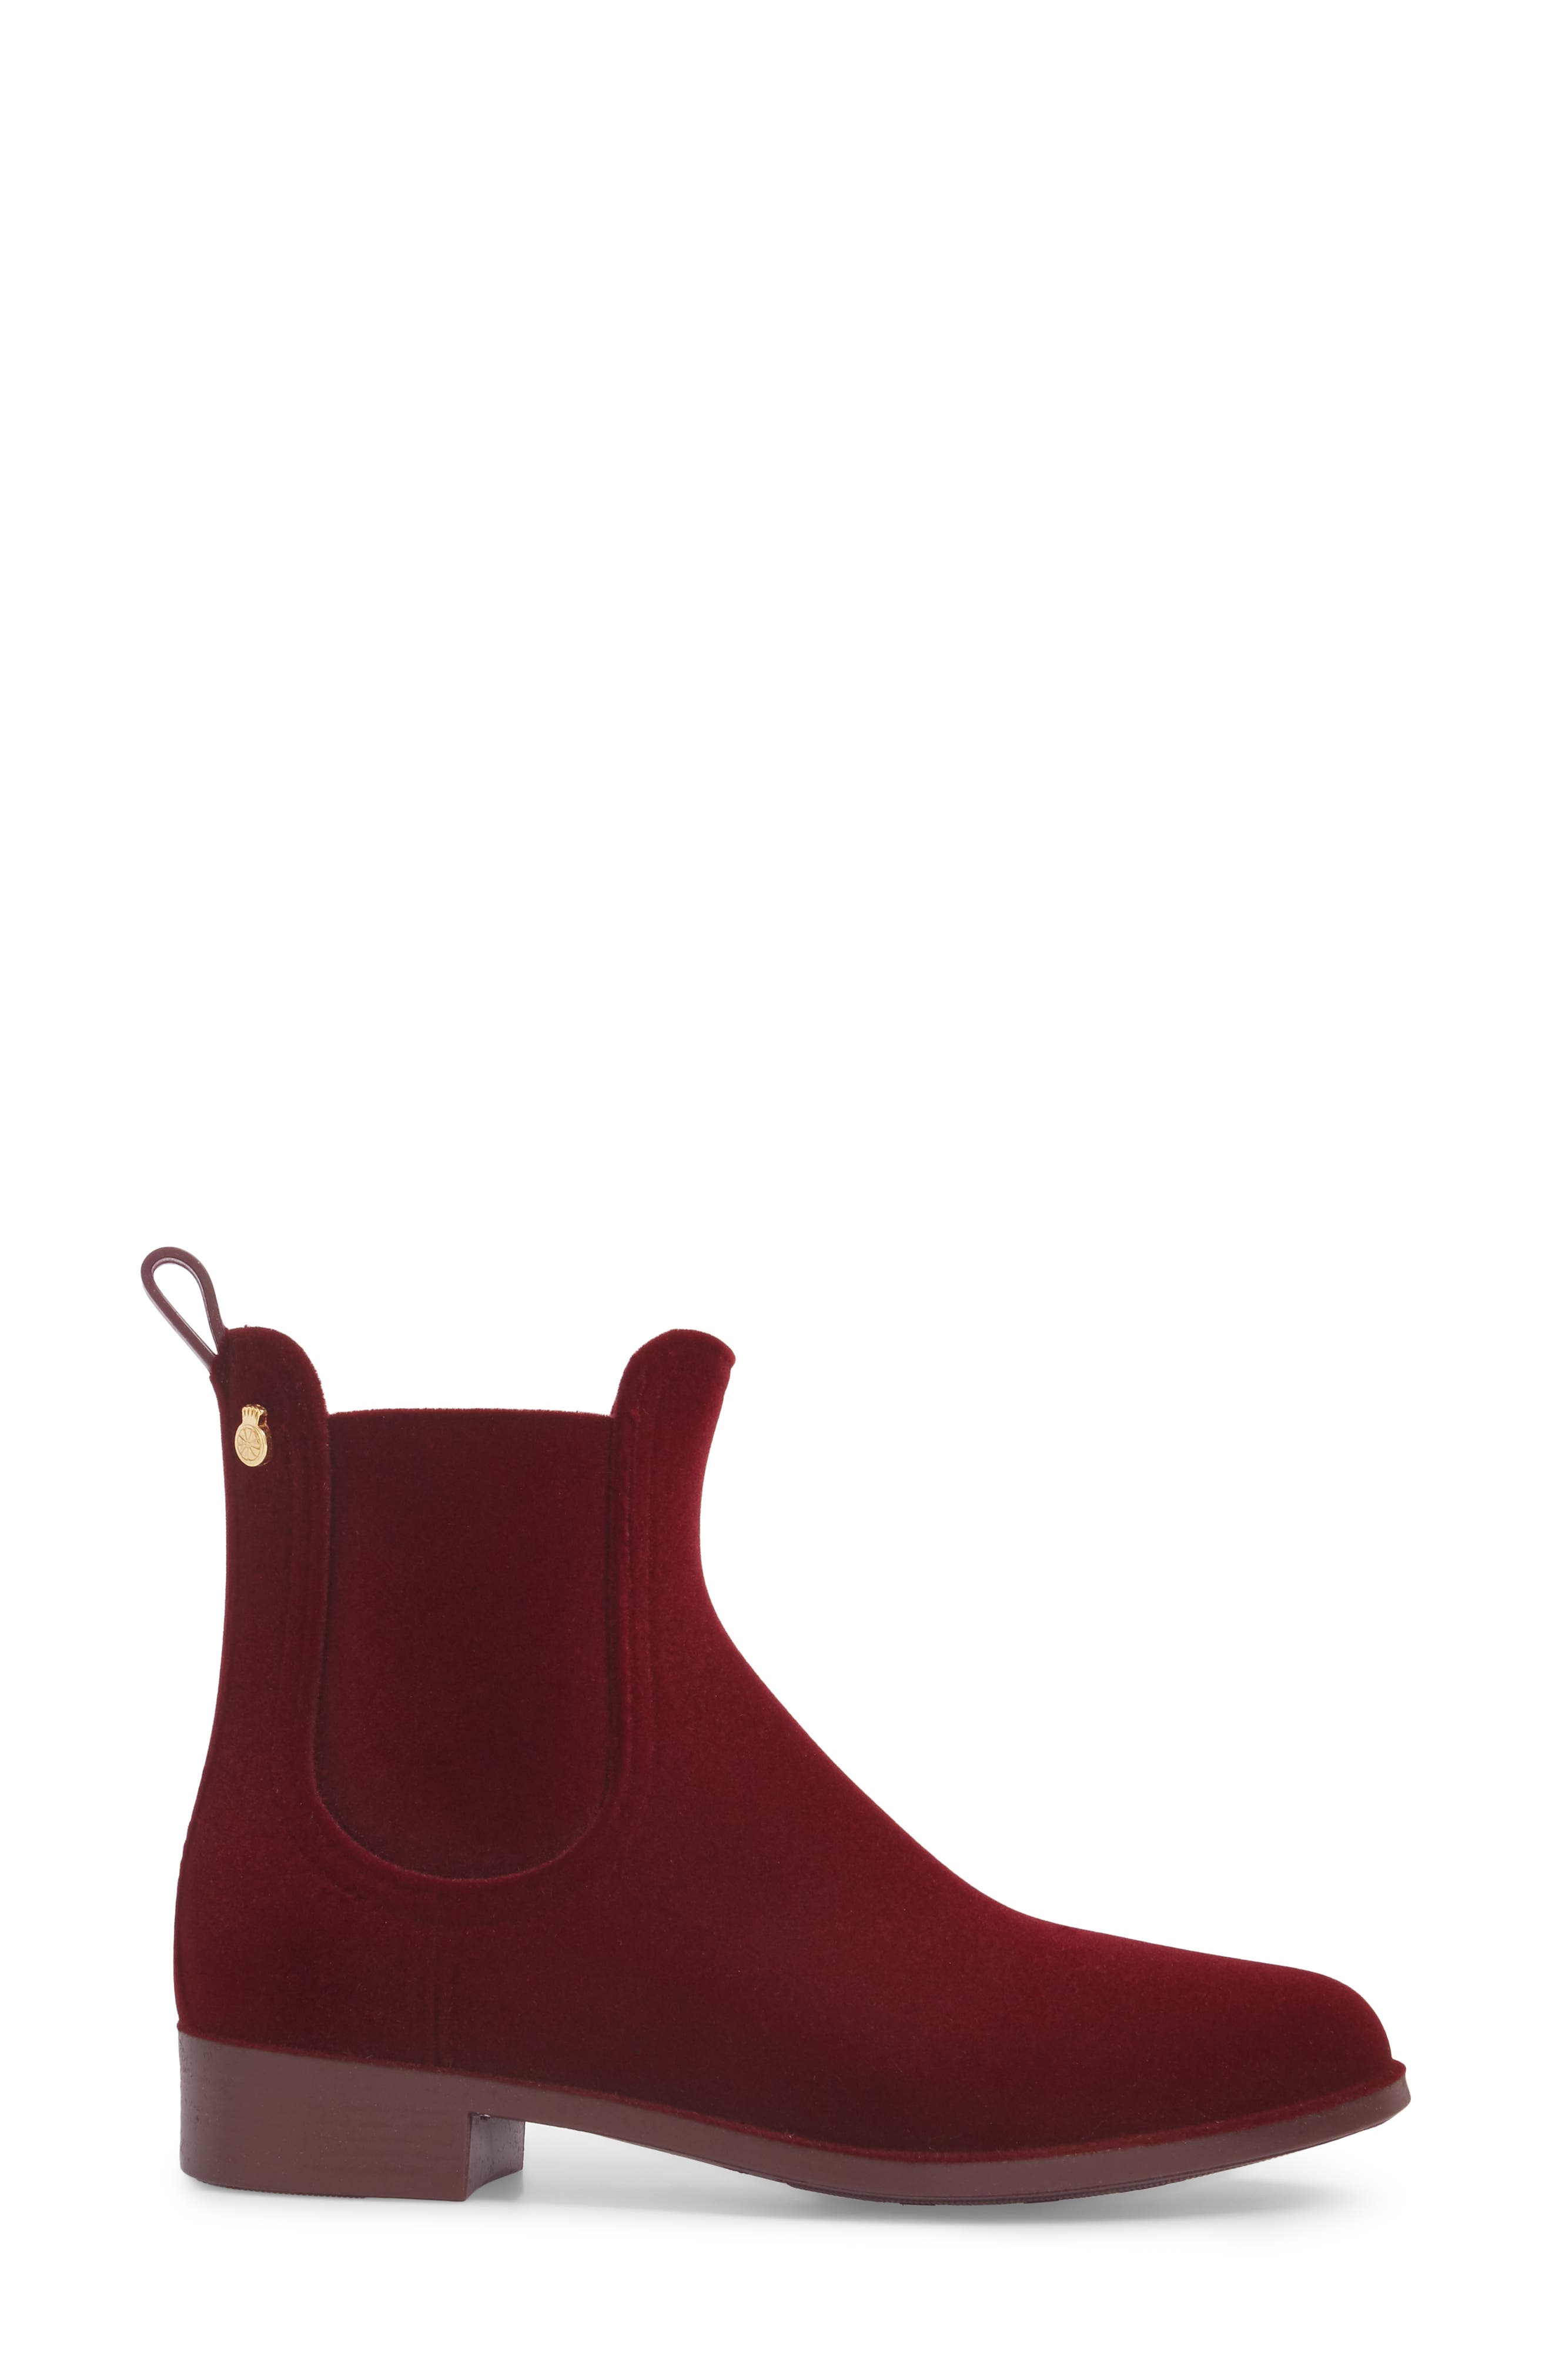 Alternate Image 3  - Lemon Jelly Velvety Waterproof Chelsea Bootie (Women)